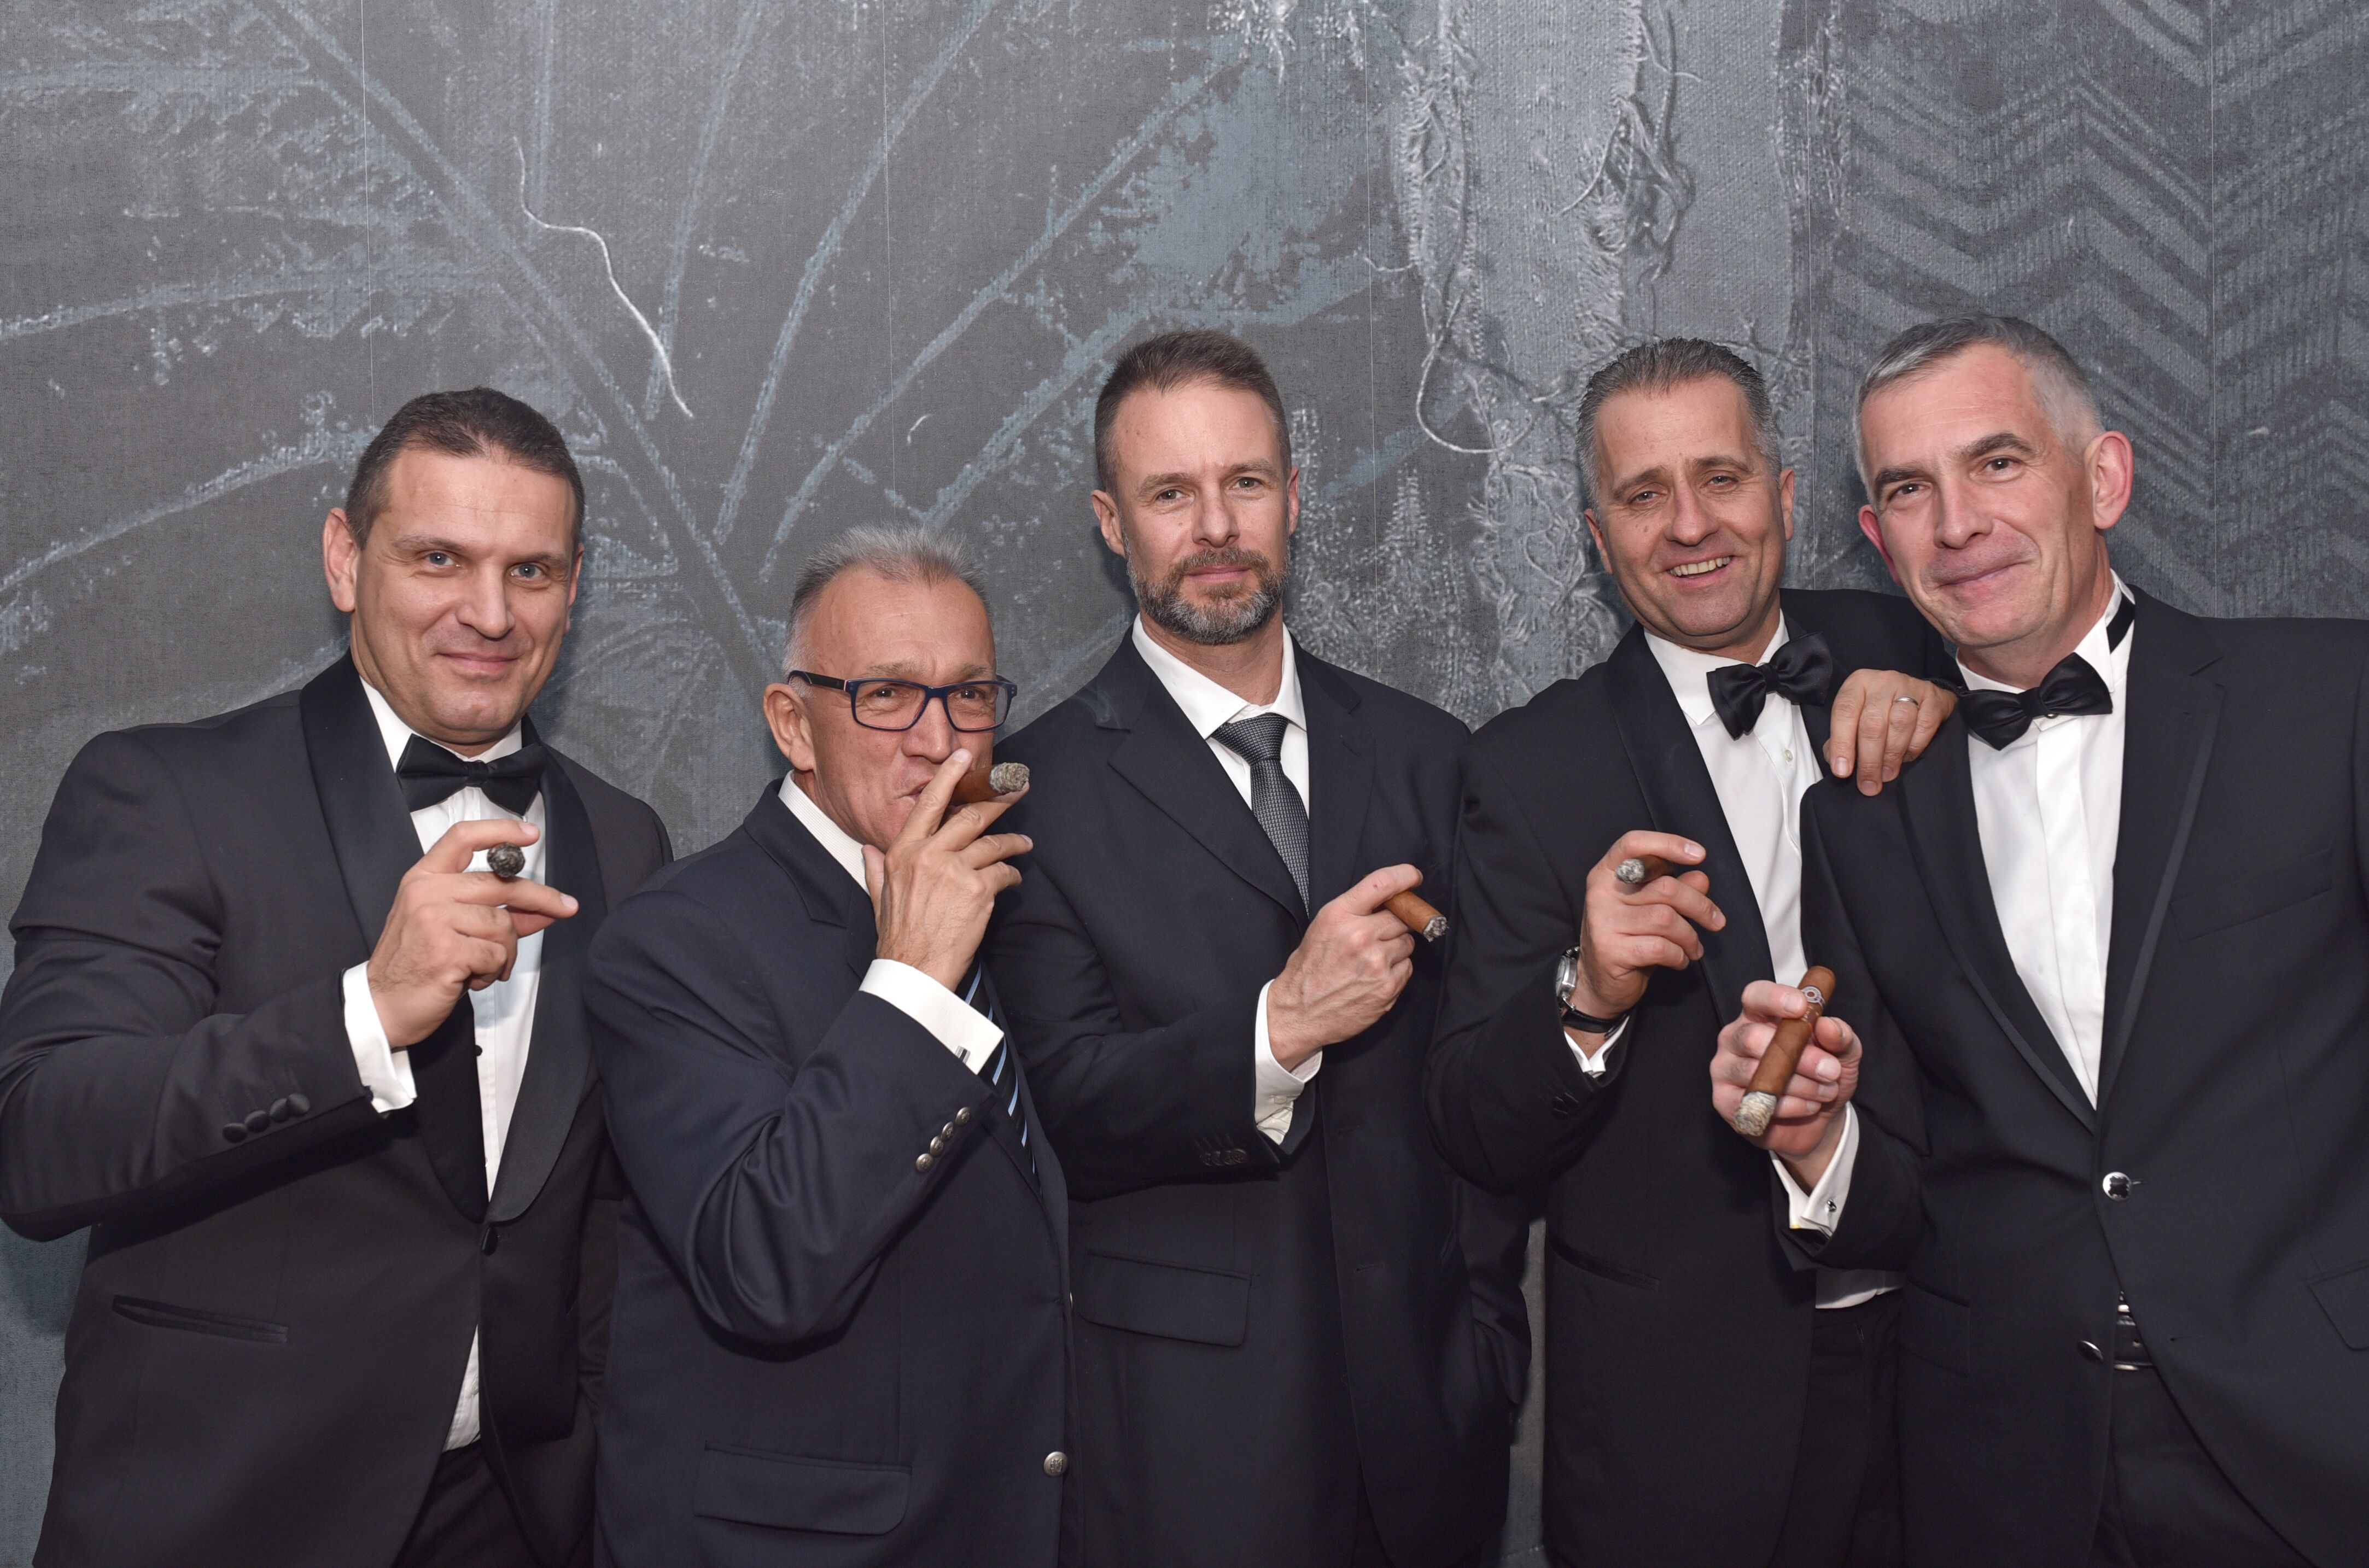 hungarian_cigar_smokers_the_club_8.jpeg